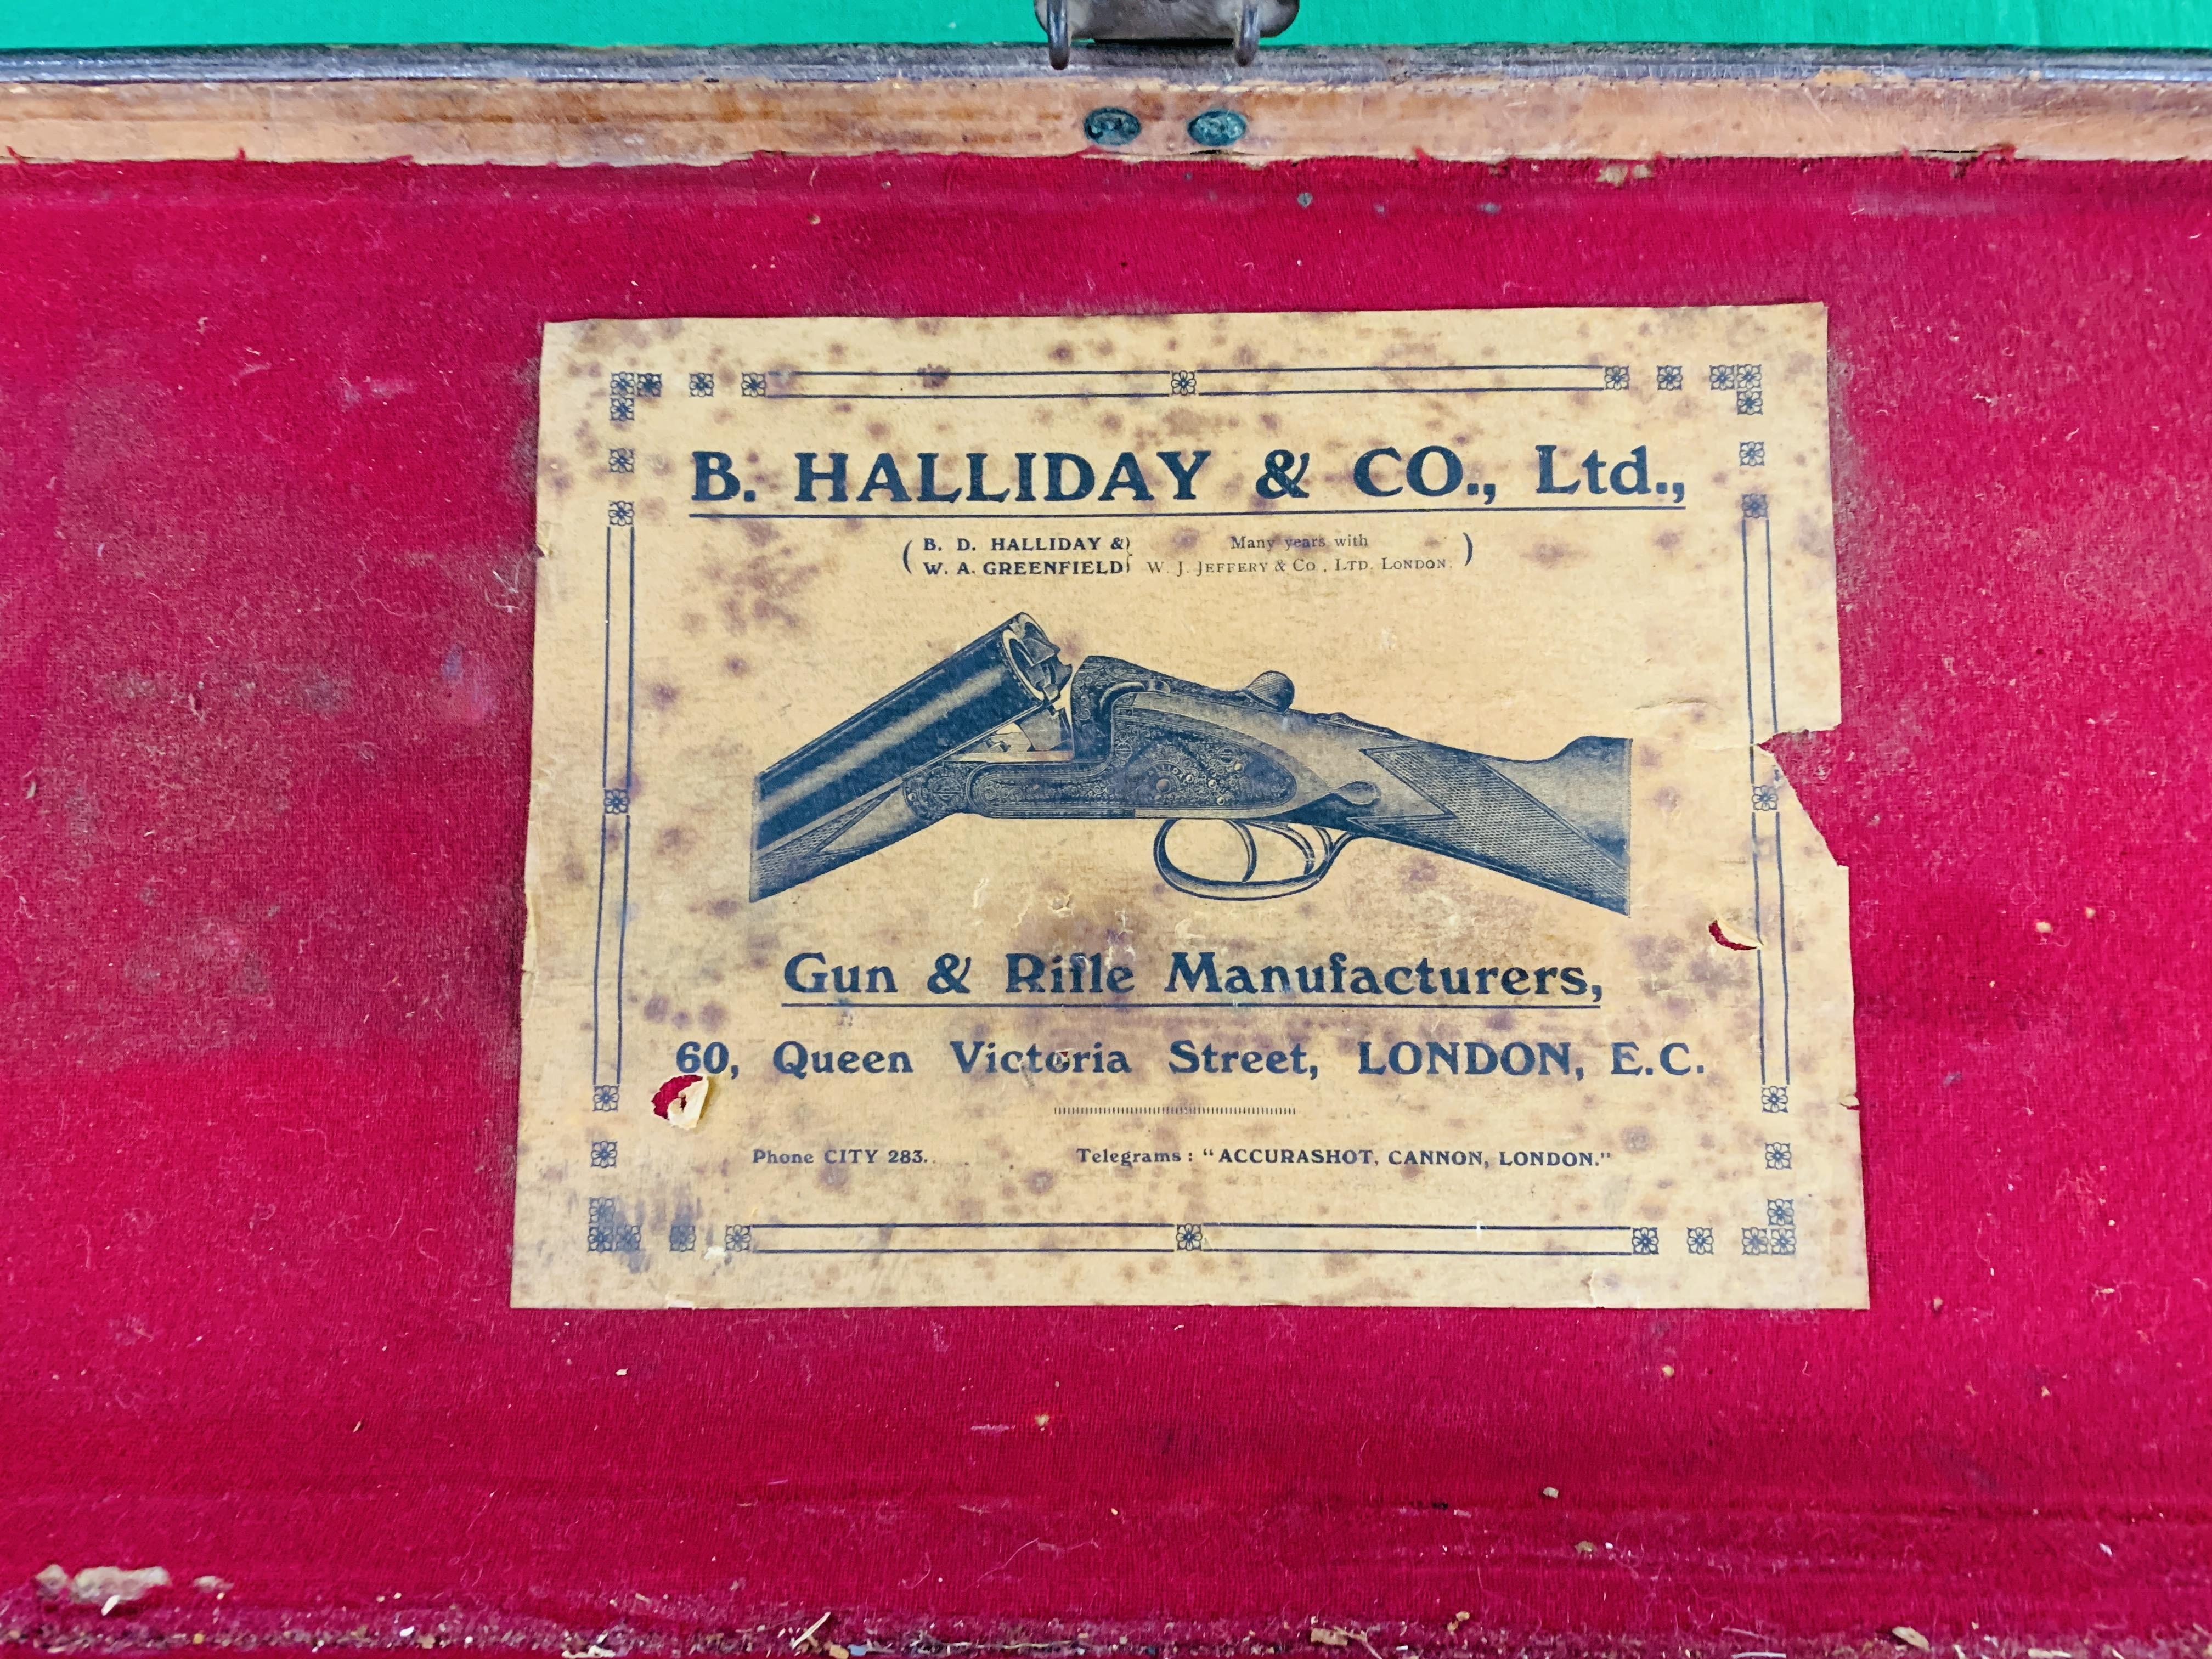 """OAK AND LEATHER 28 / 30"""" SIDE BY SIDE GUN CASE WITH B. HALLIDAY AND CO. LTD OF LONDON CASE LABEL. - Image 2 of 10"""